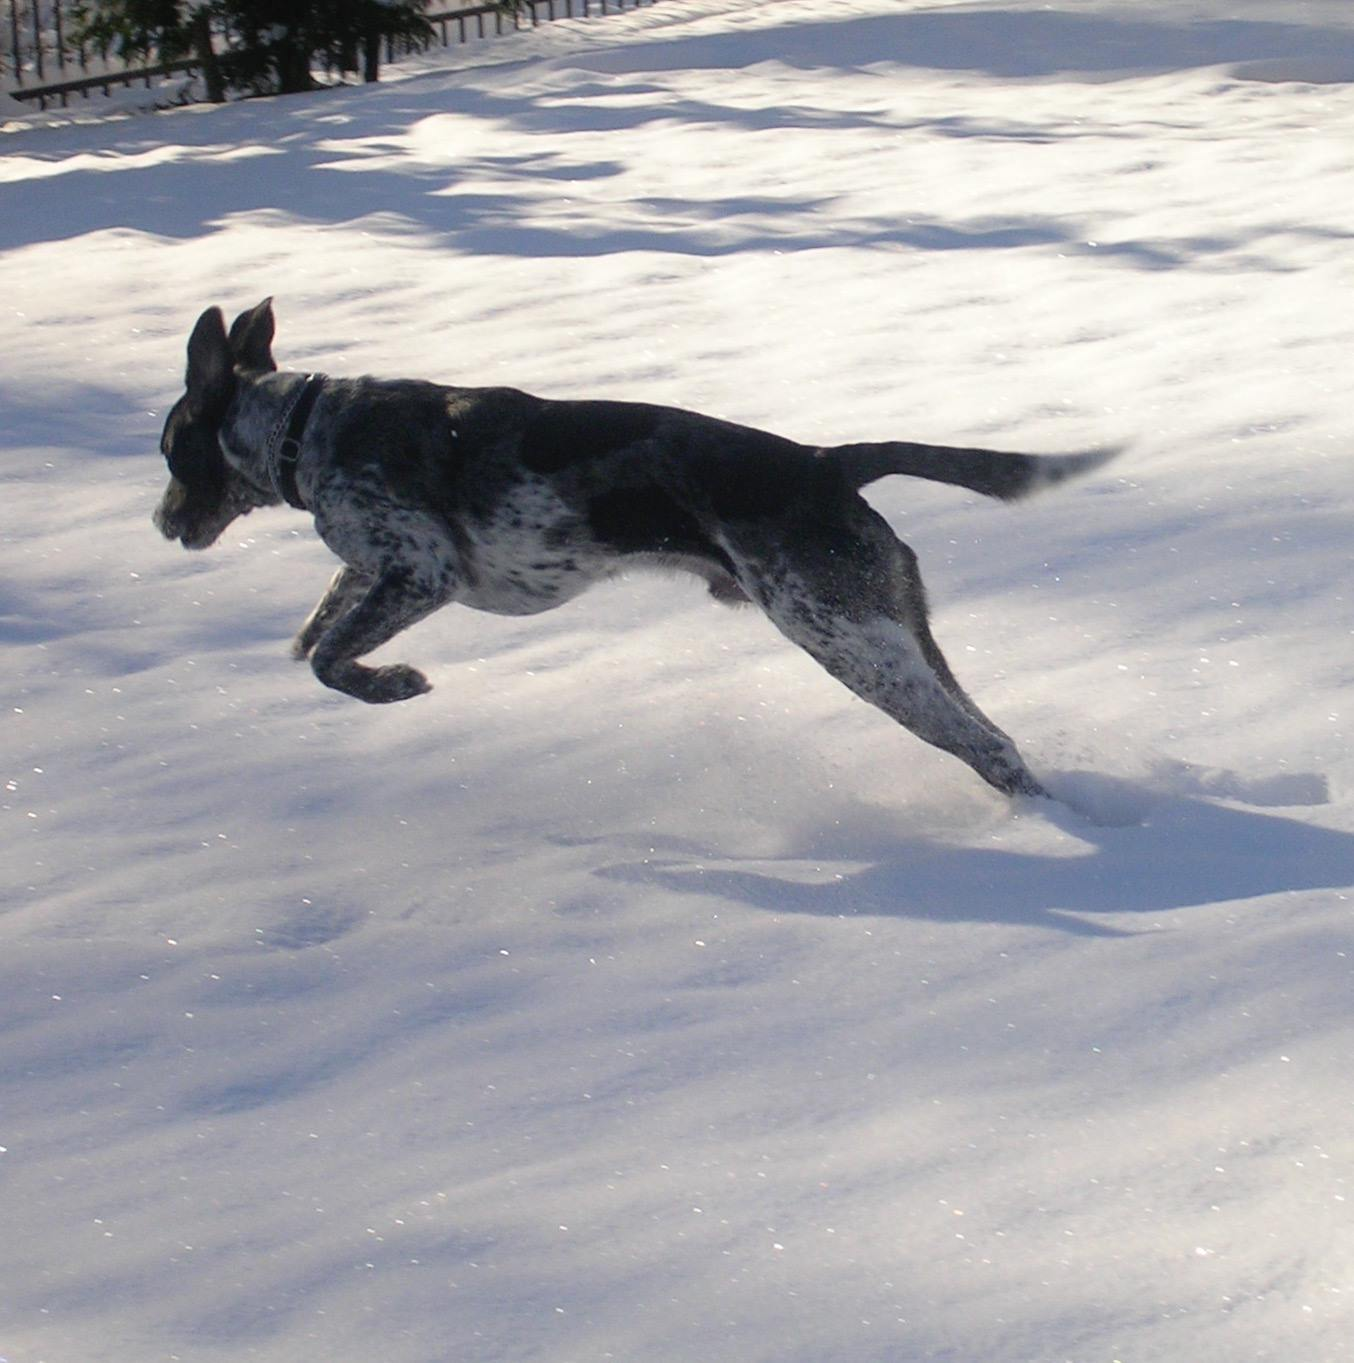 For a dog that loved the heat as much as Buddy, he certainly had fun in the snow :)